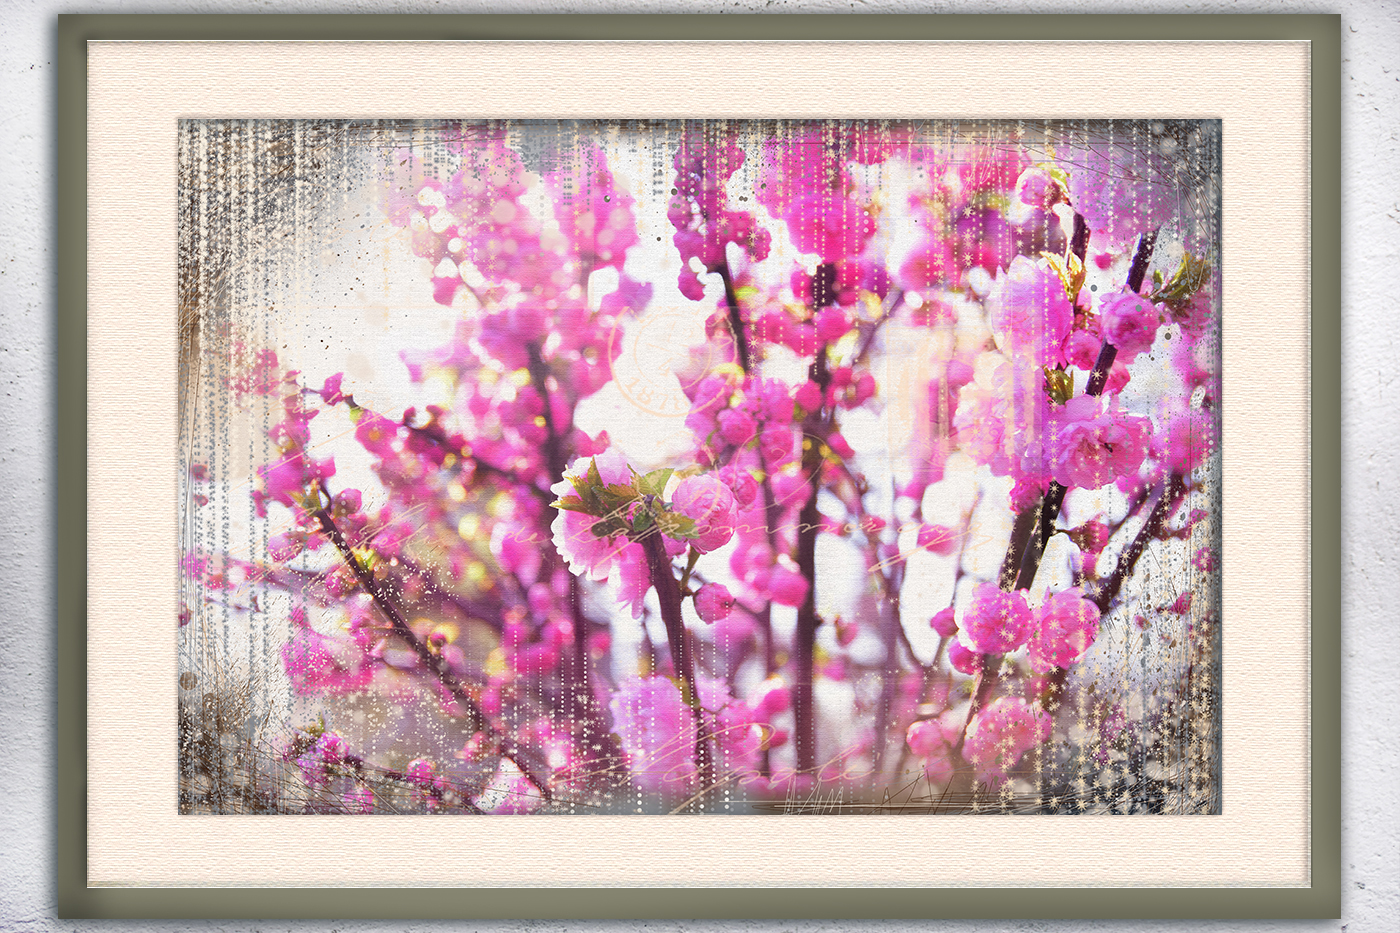 Nature photo, floral photo, spring photo example image 3